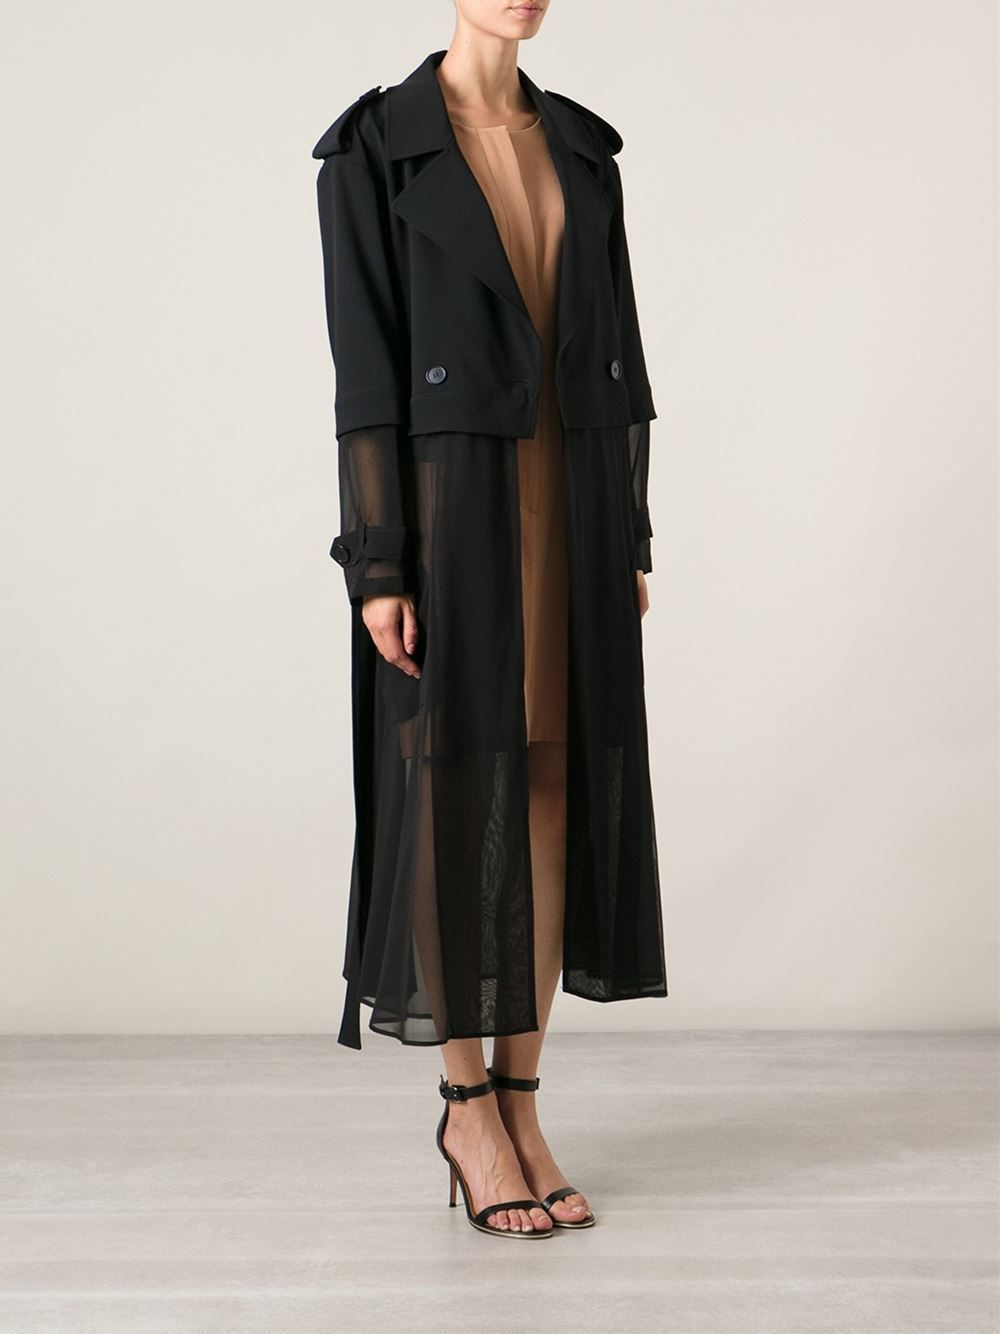 Shop Dkny Sheer Long Trench Coat From Farfetch Trench